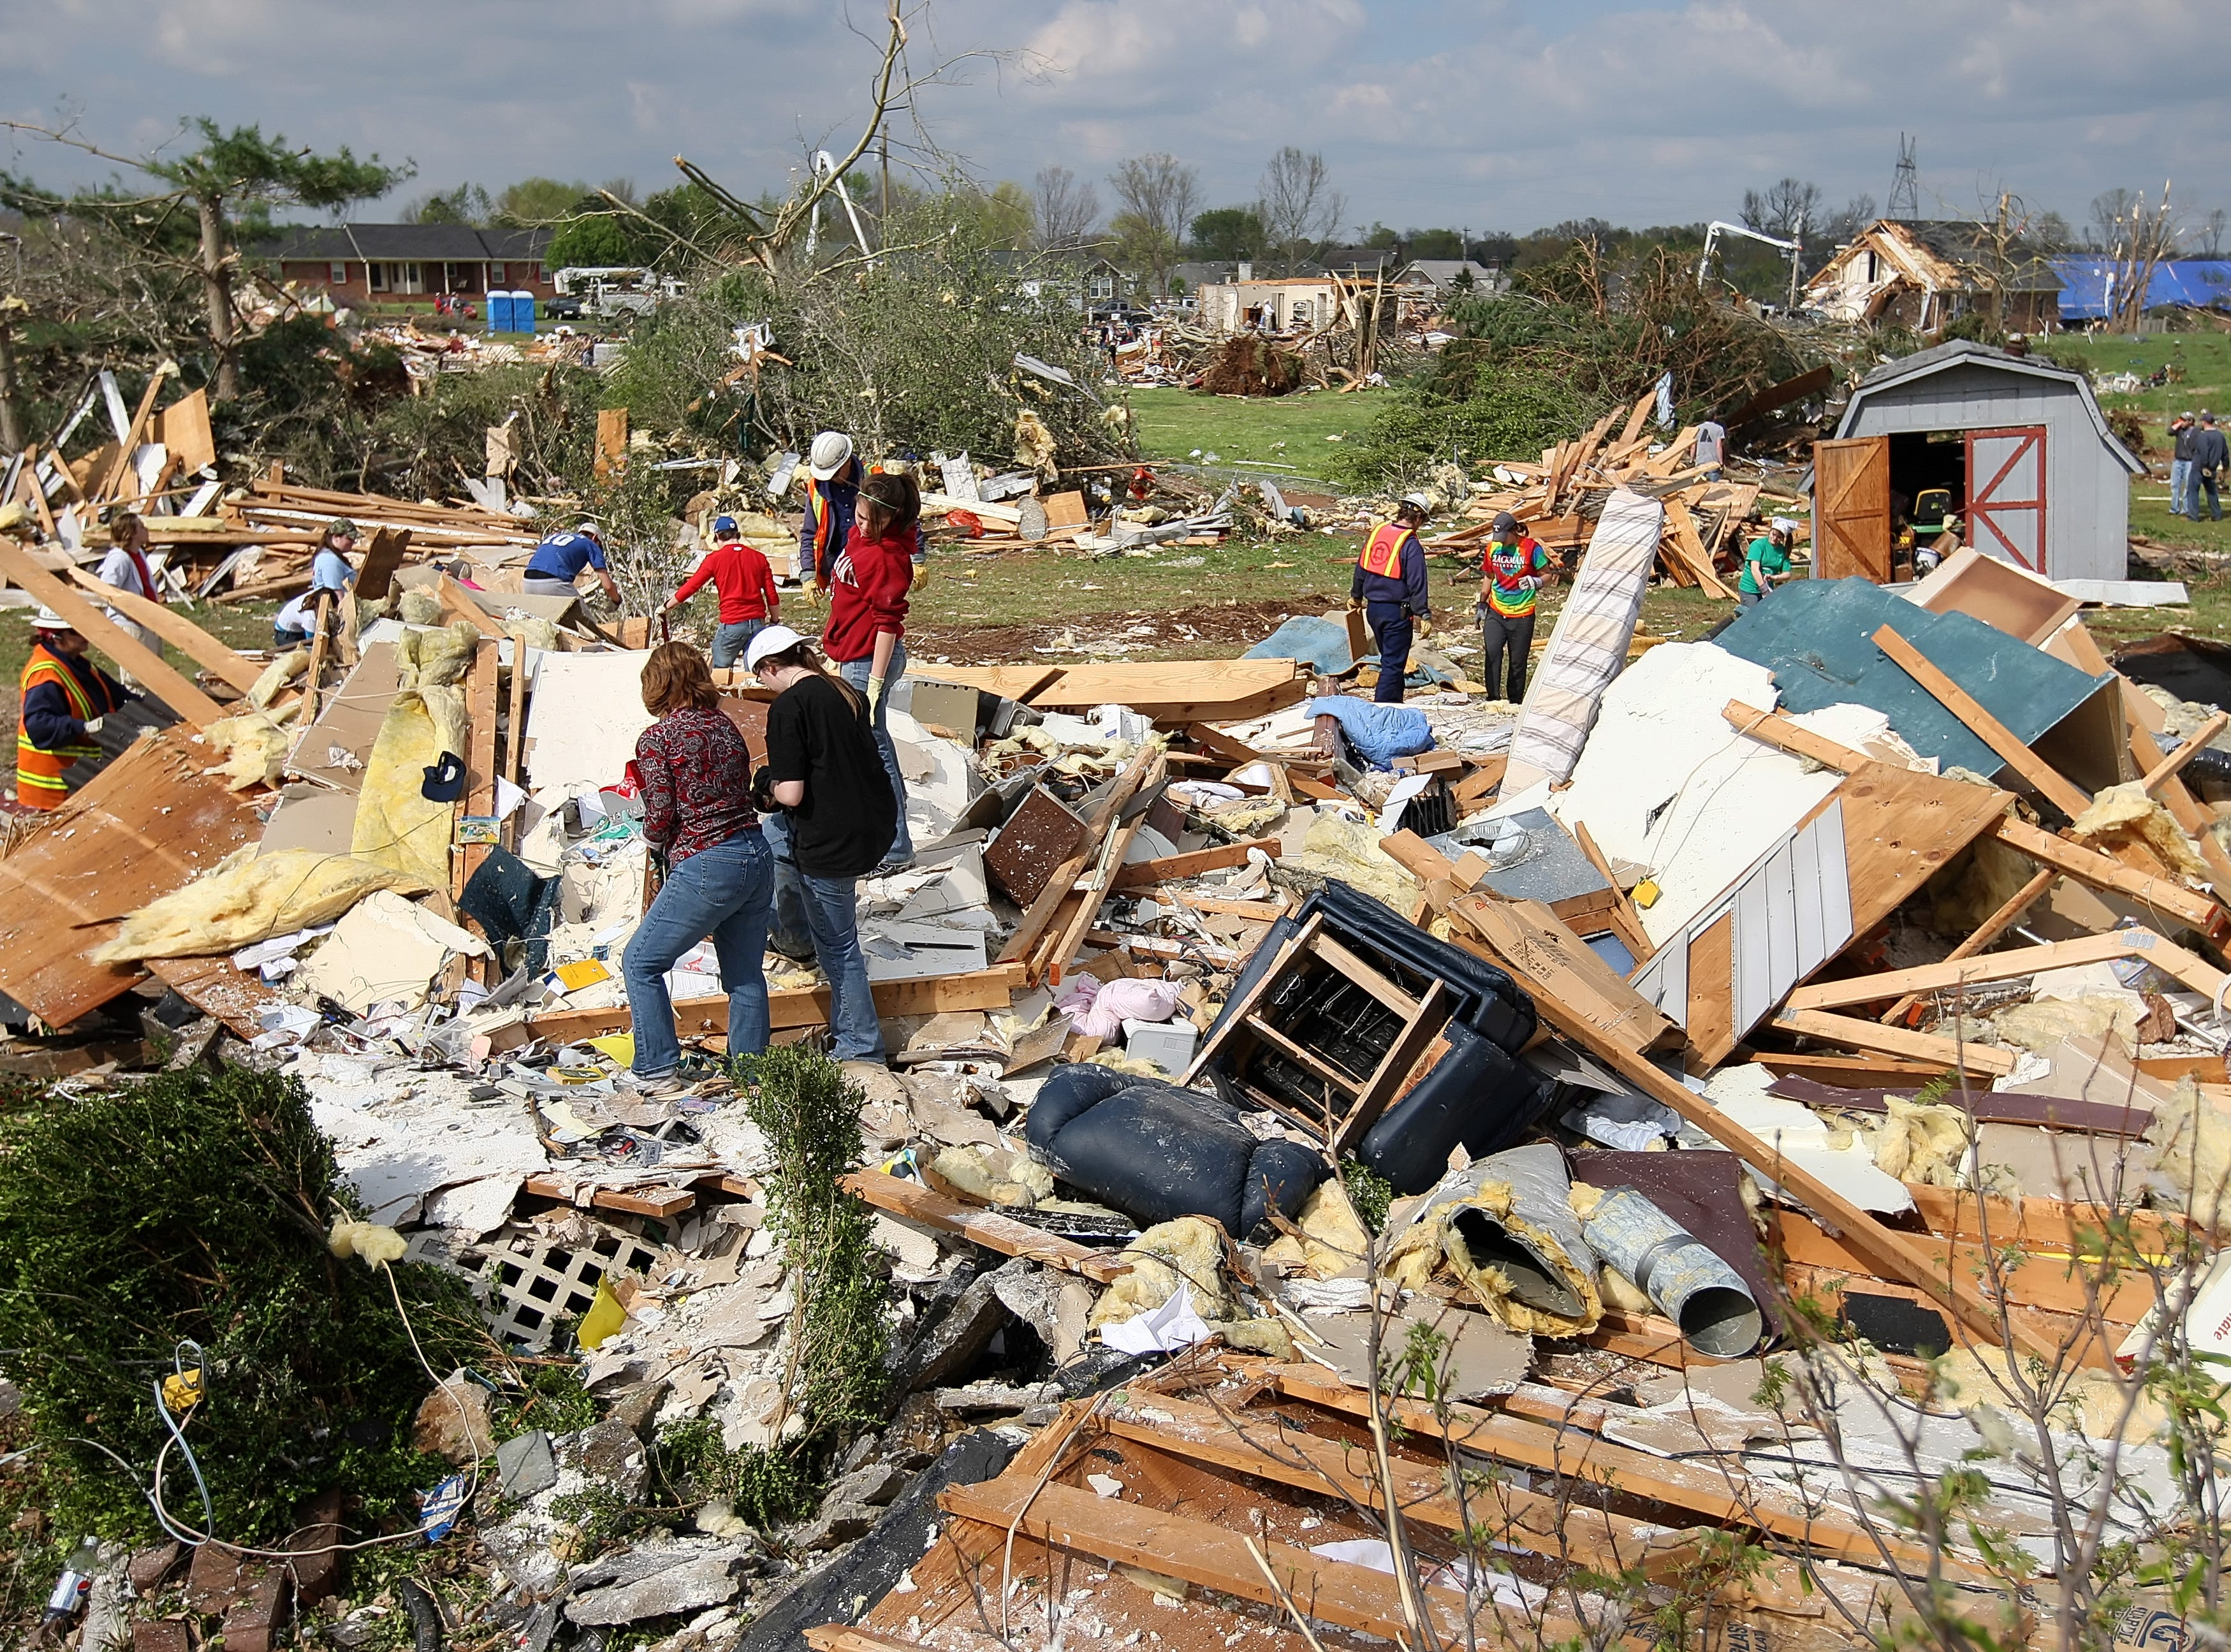 Volunteers and neighbors help to clean up a home which was destroyed in the Blackman Community after a tornado in Murfreesboro, Tennessee on Saturday April 11, 2009. (Josh Anderson for The Tennessean)